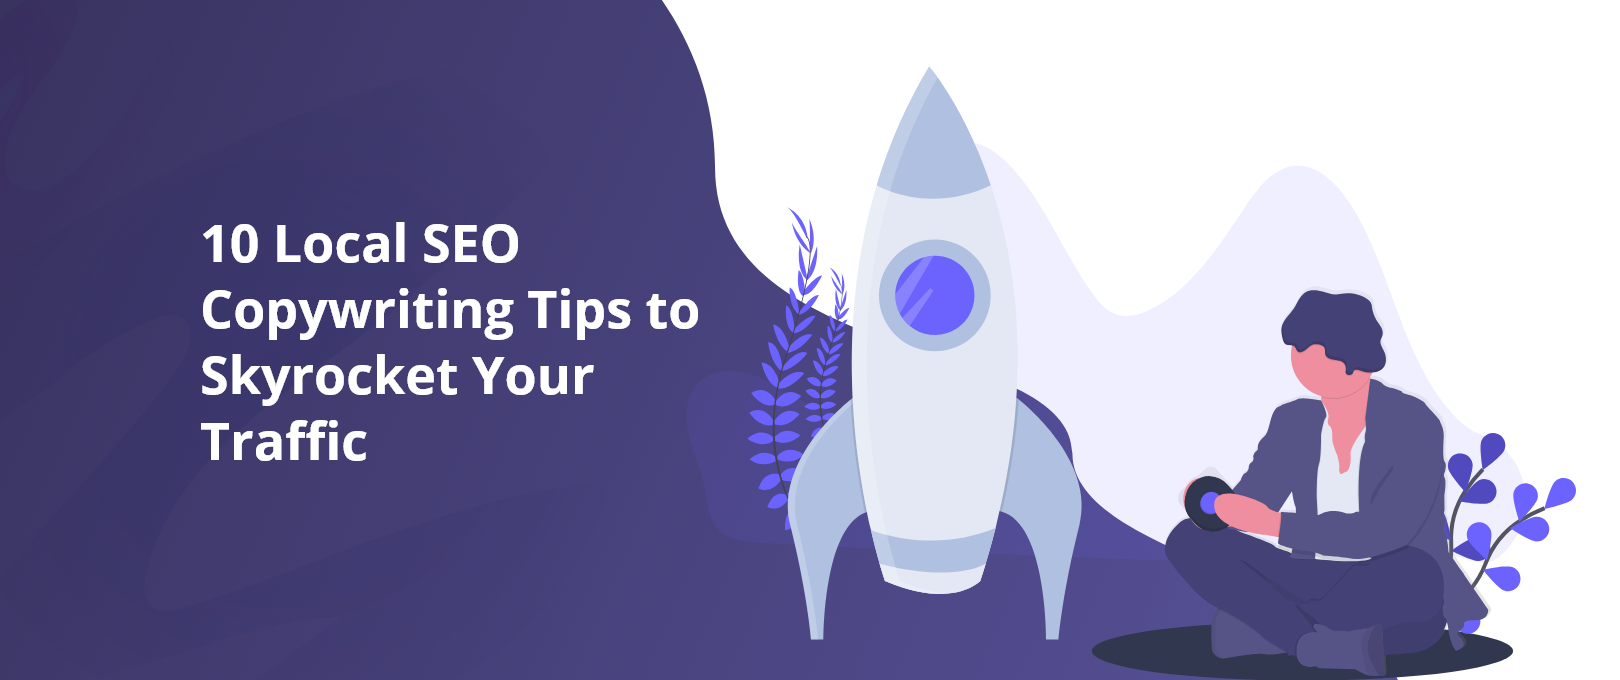 10 Local SEO Copywriting Tips to Skyrocket Your Traffic